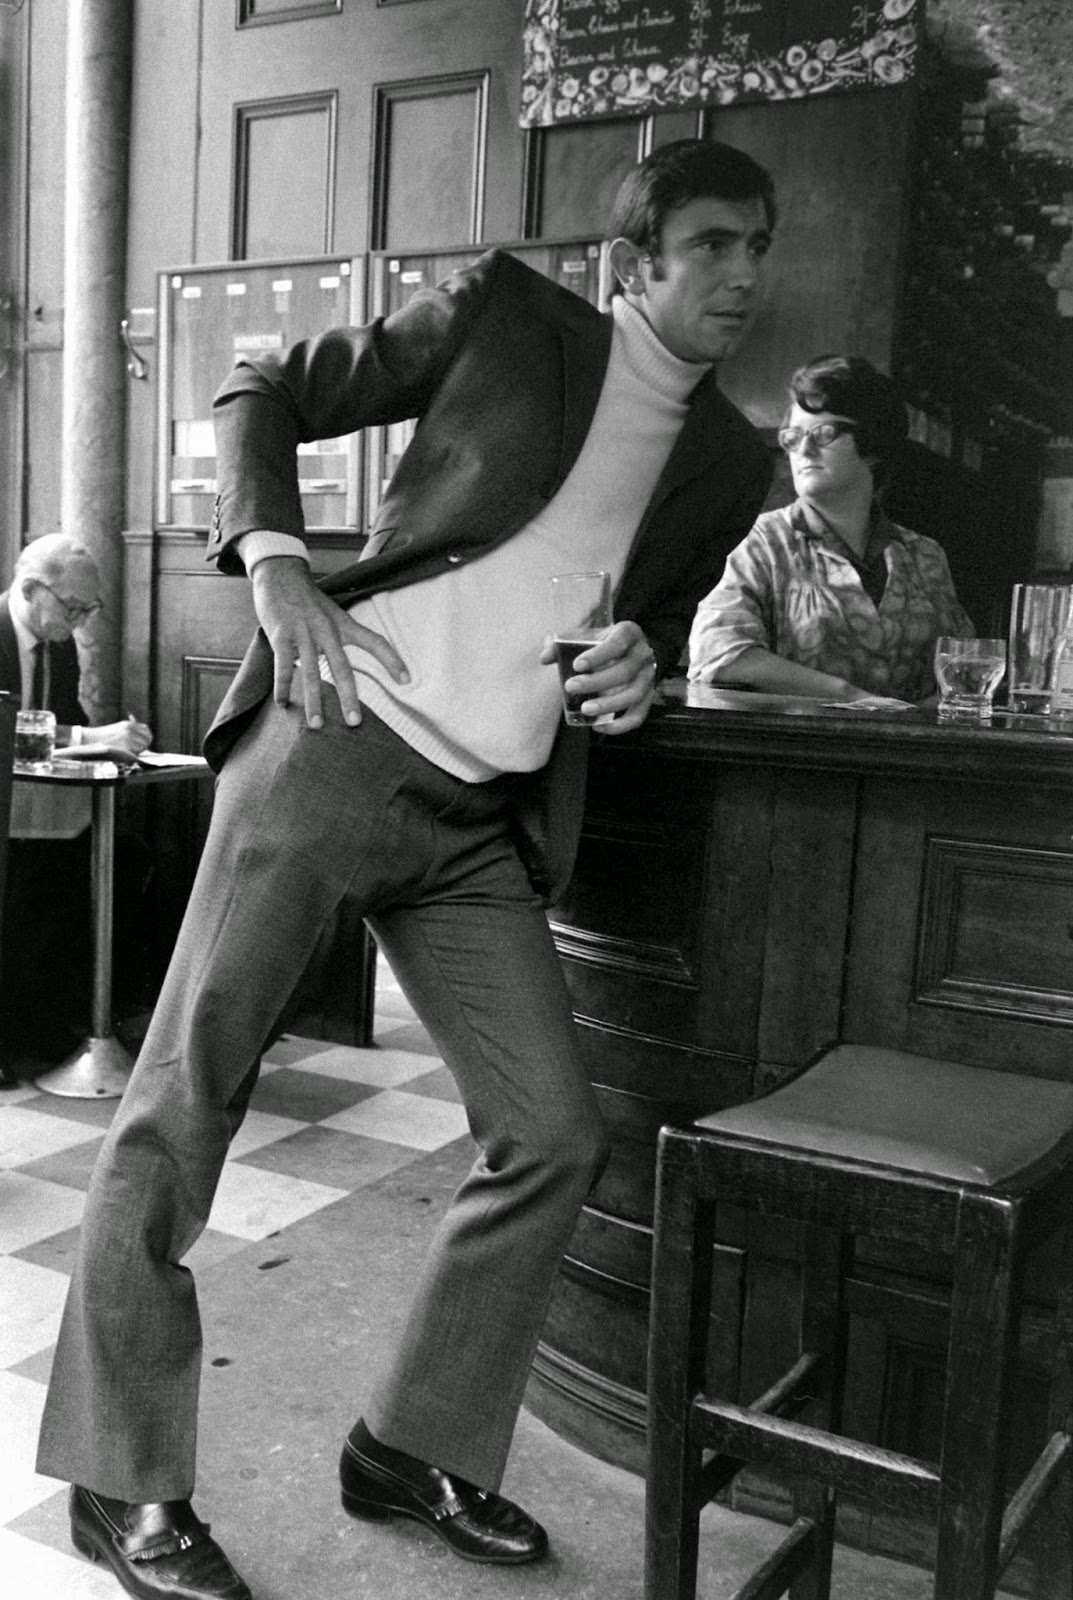 George Lazenby leans against a bar during a moment away from James Bond auditions, 1967.